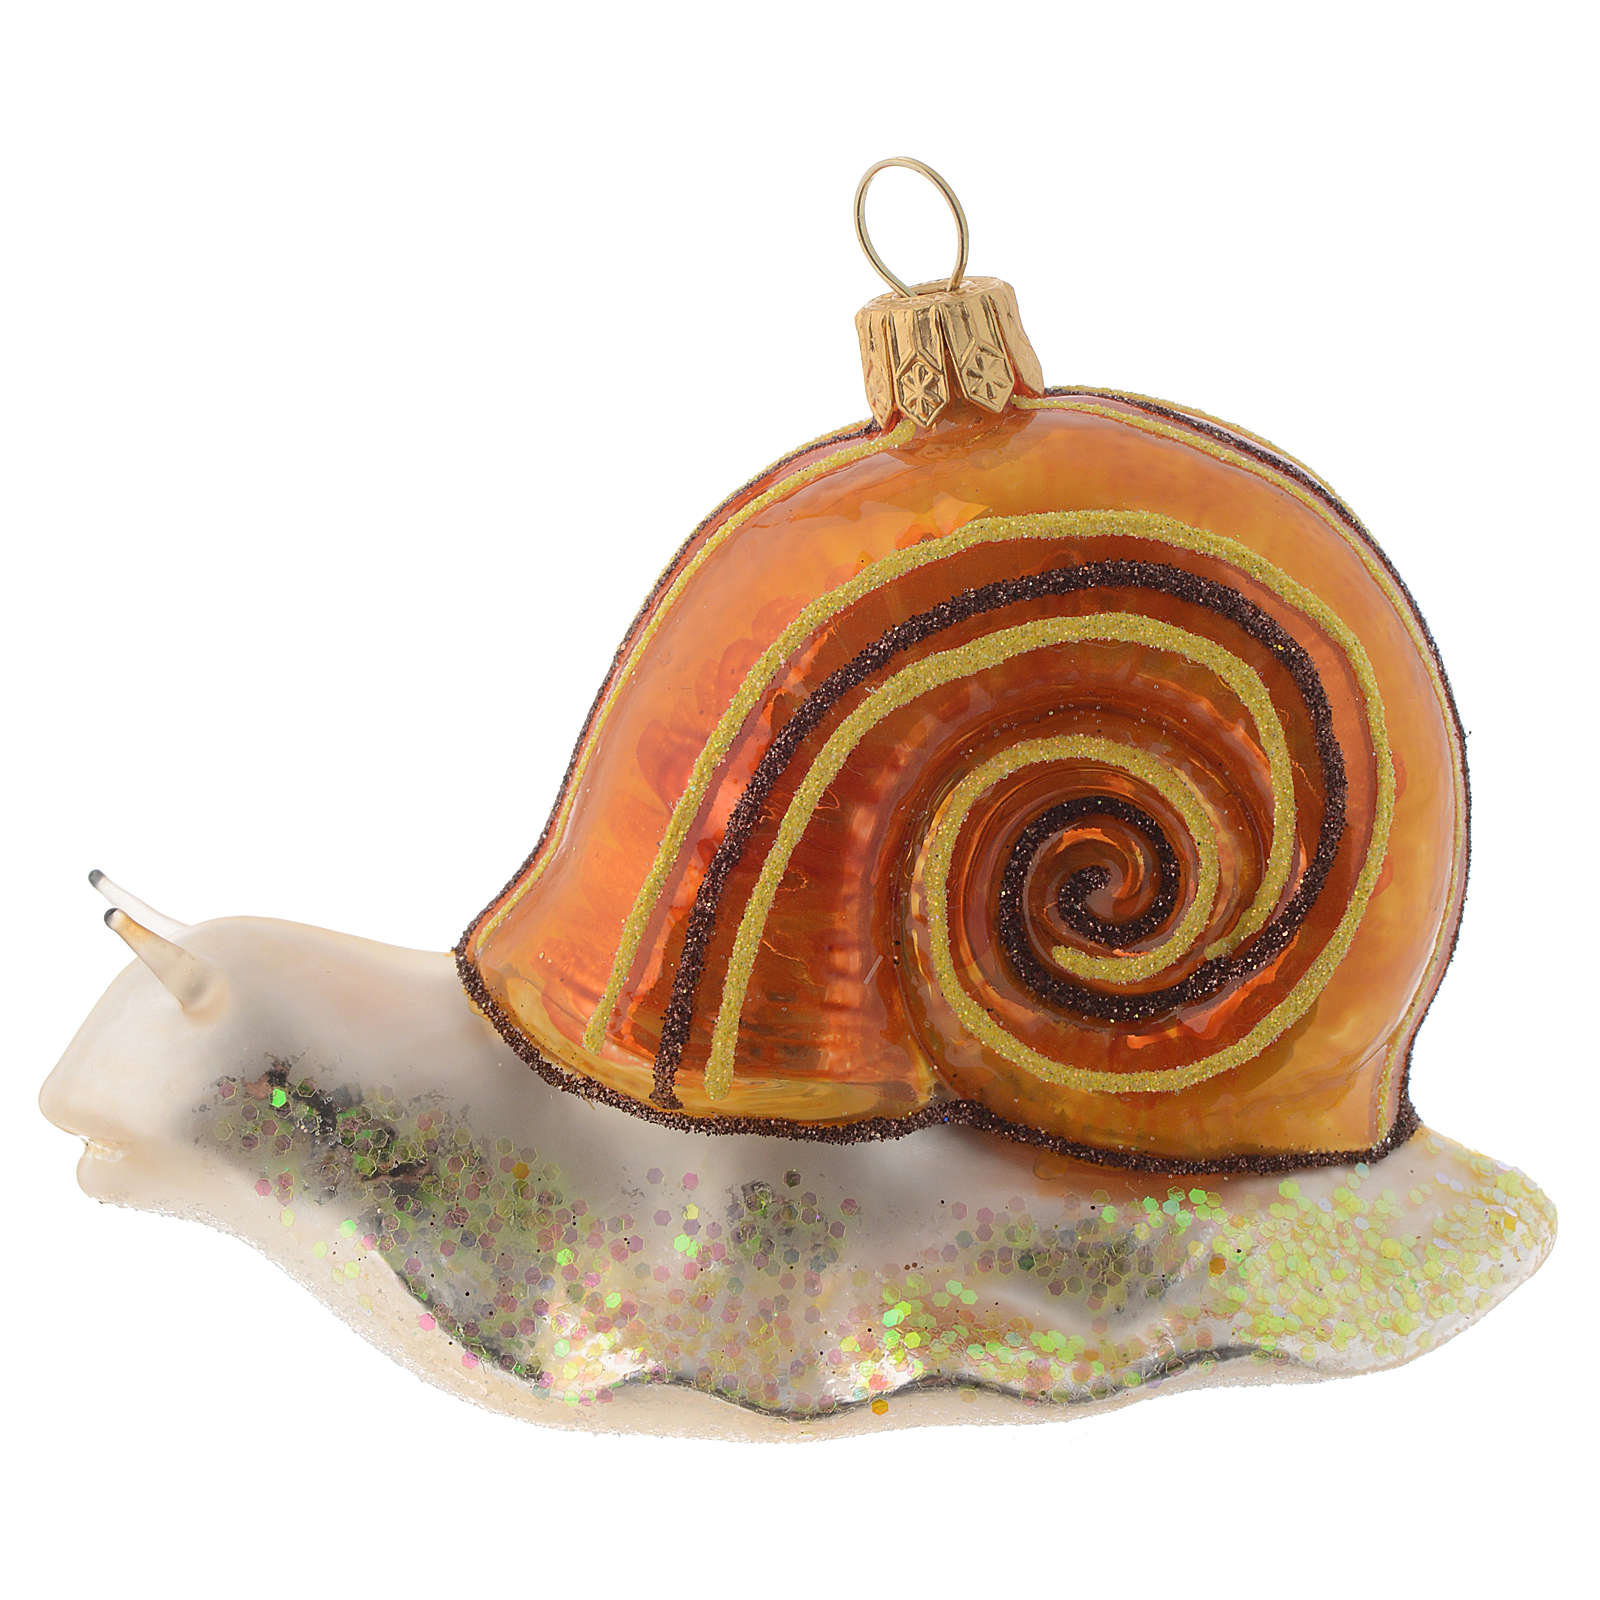 Blown glass Christmas ornament, snail. | online sales on ...